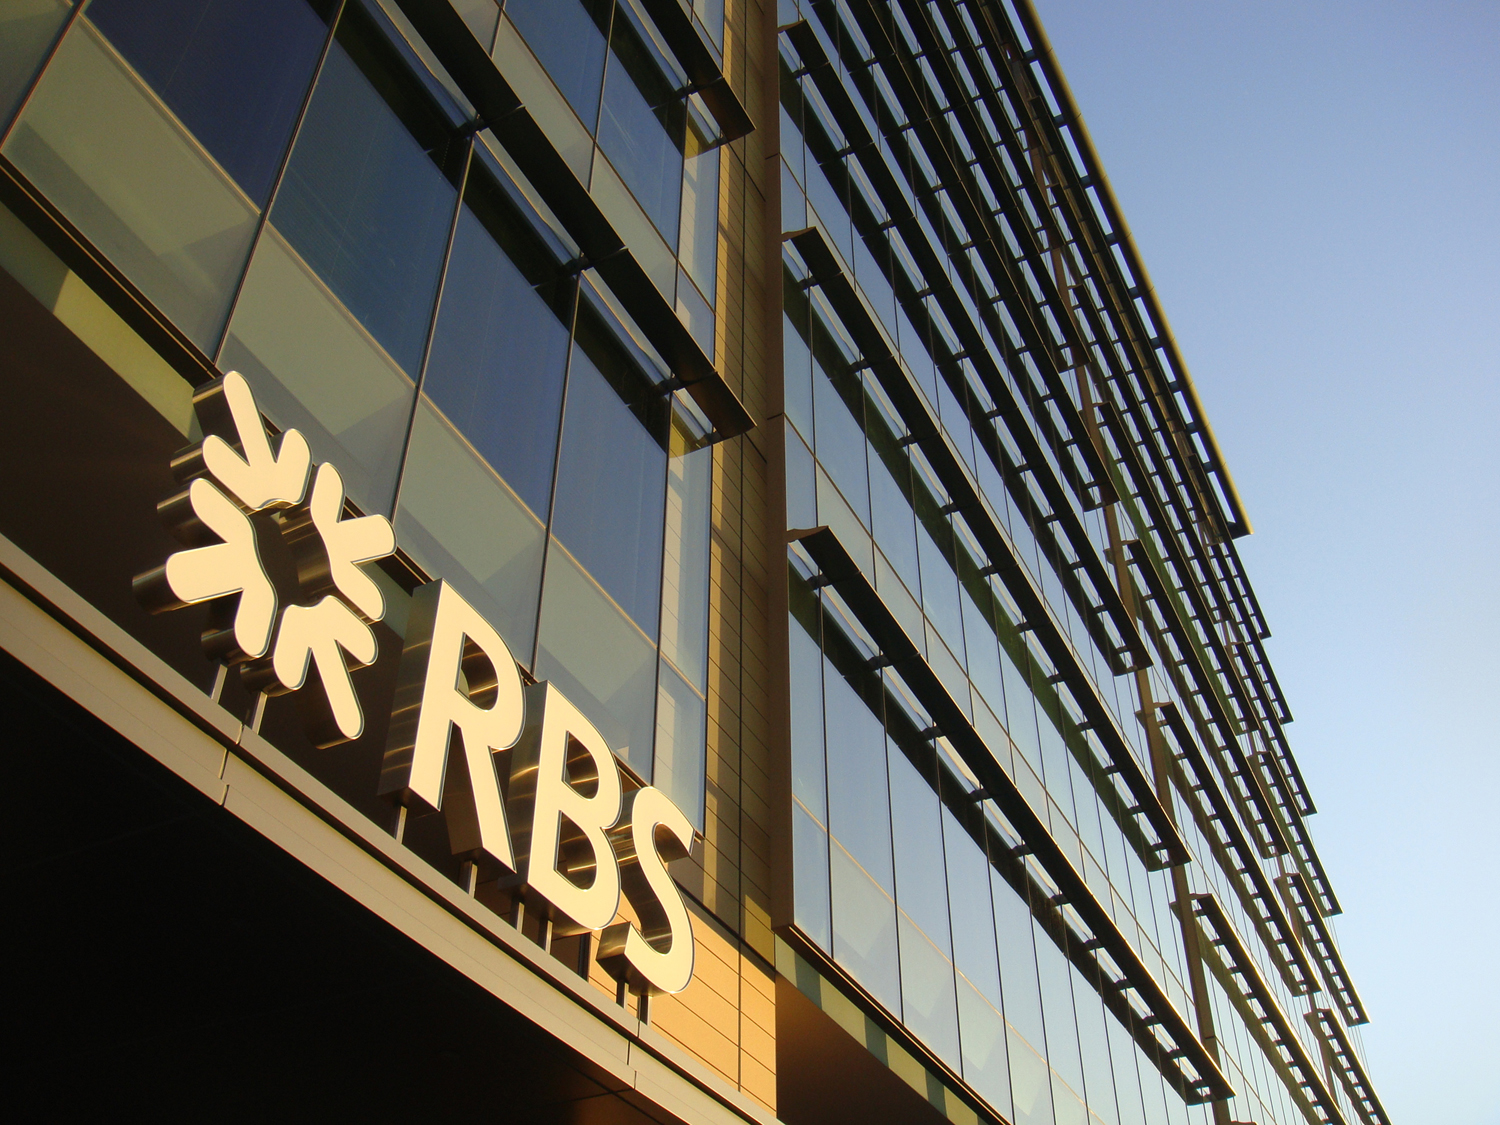 Project image 1 for Signage and Architectural Graphics, RBS / Royal Bank of Scotland